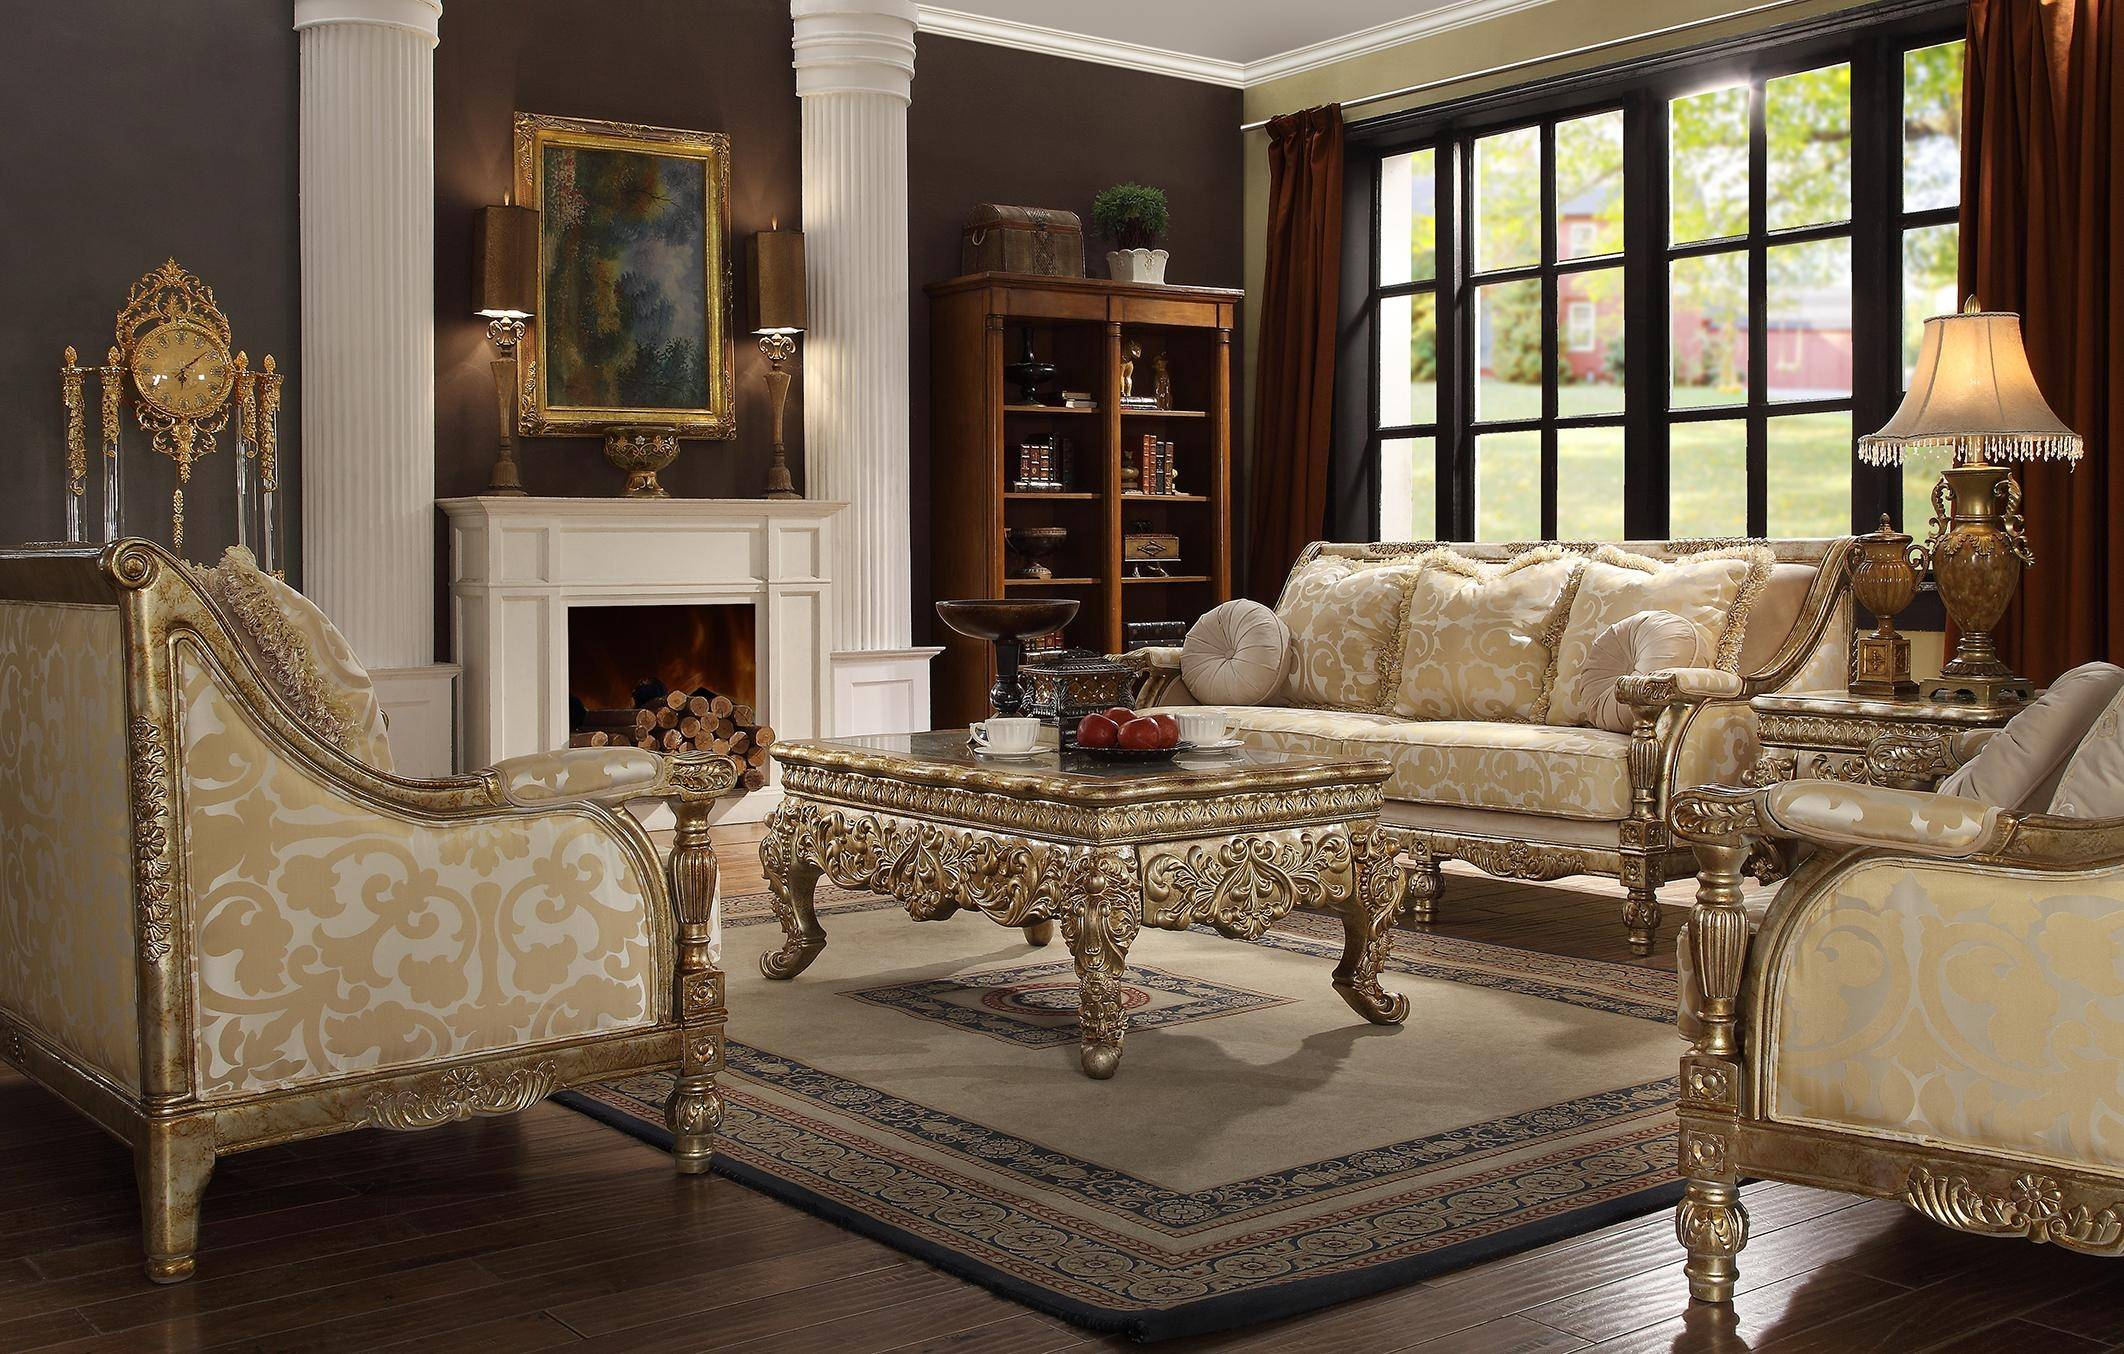 Homey Design Hd 205 Antique Gold Finish Victorian Living Room Sofa Set 7pcs Carved Wood Hd 205 Set 7